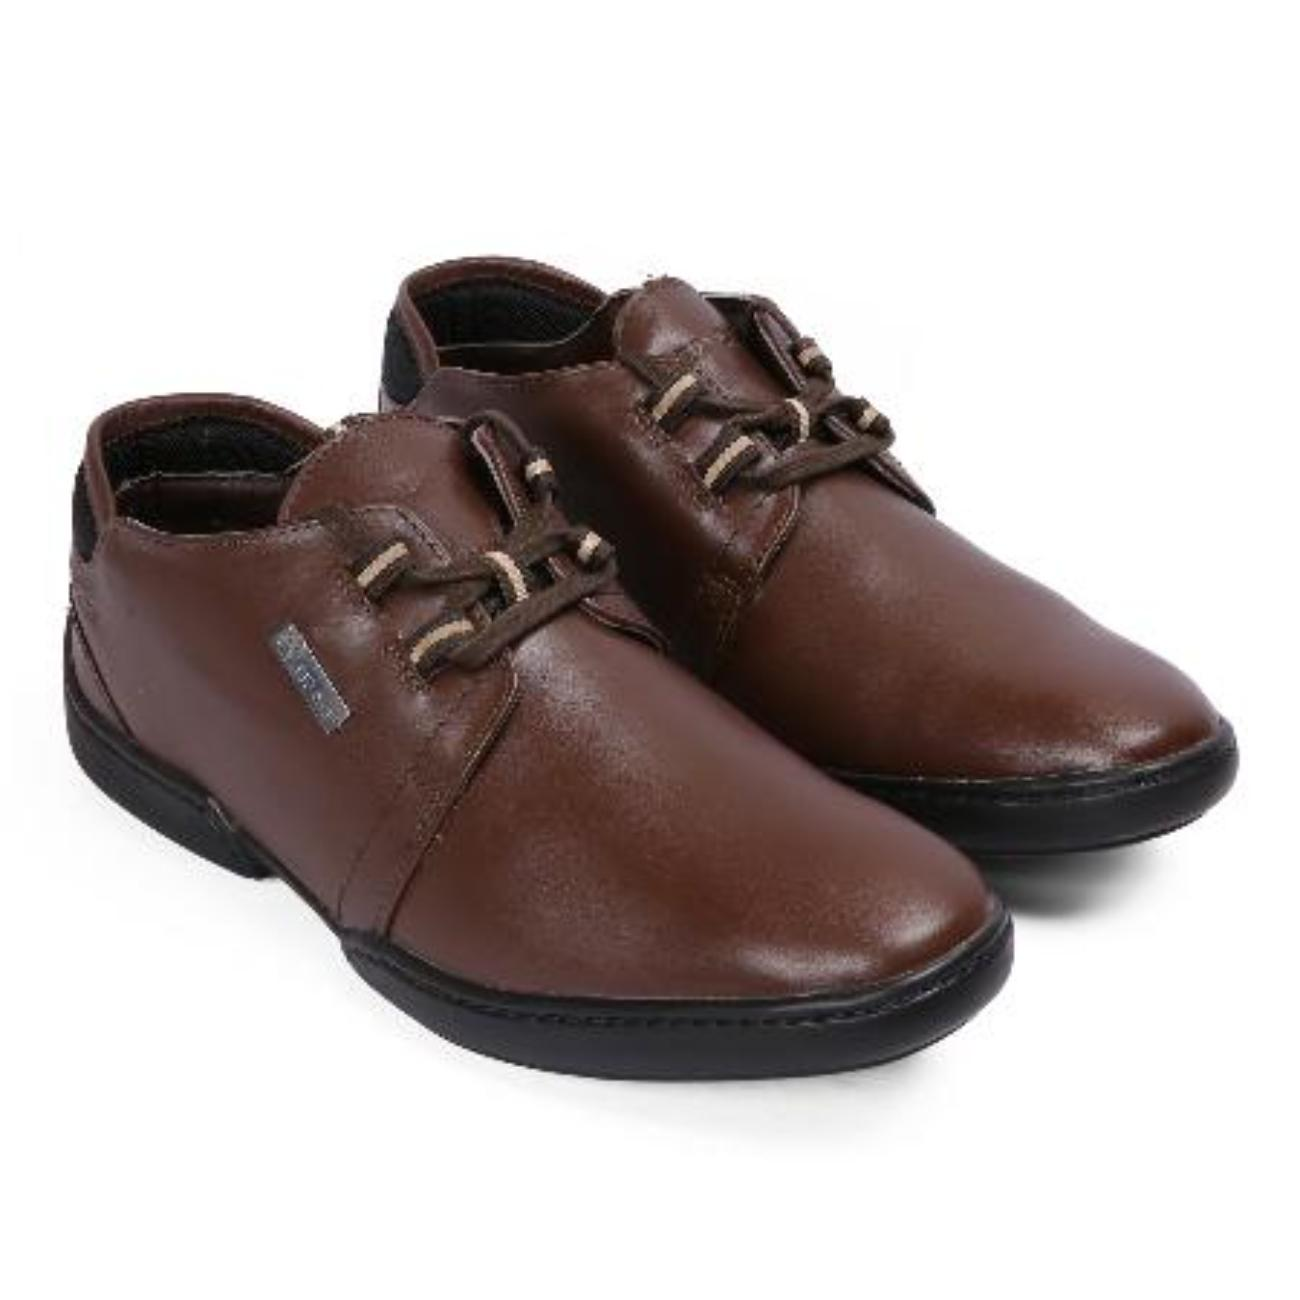 brown casual leather shoes from behind